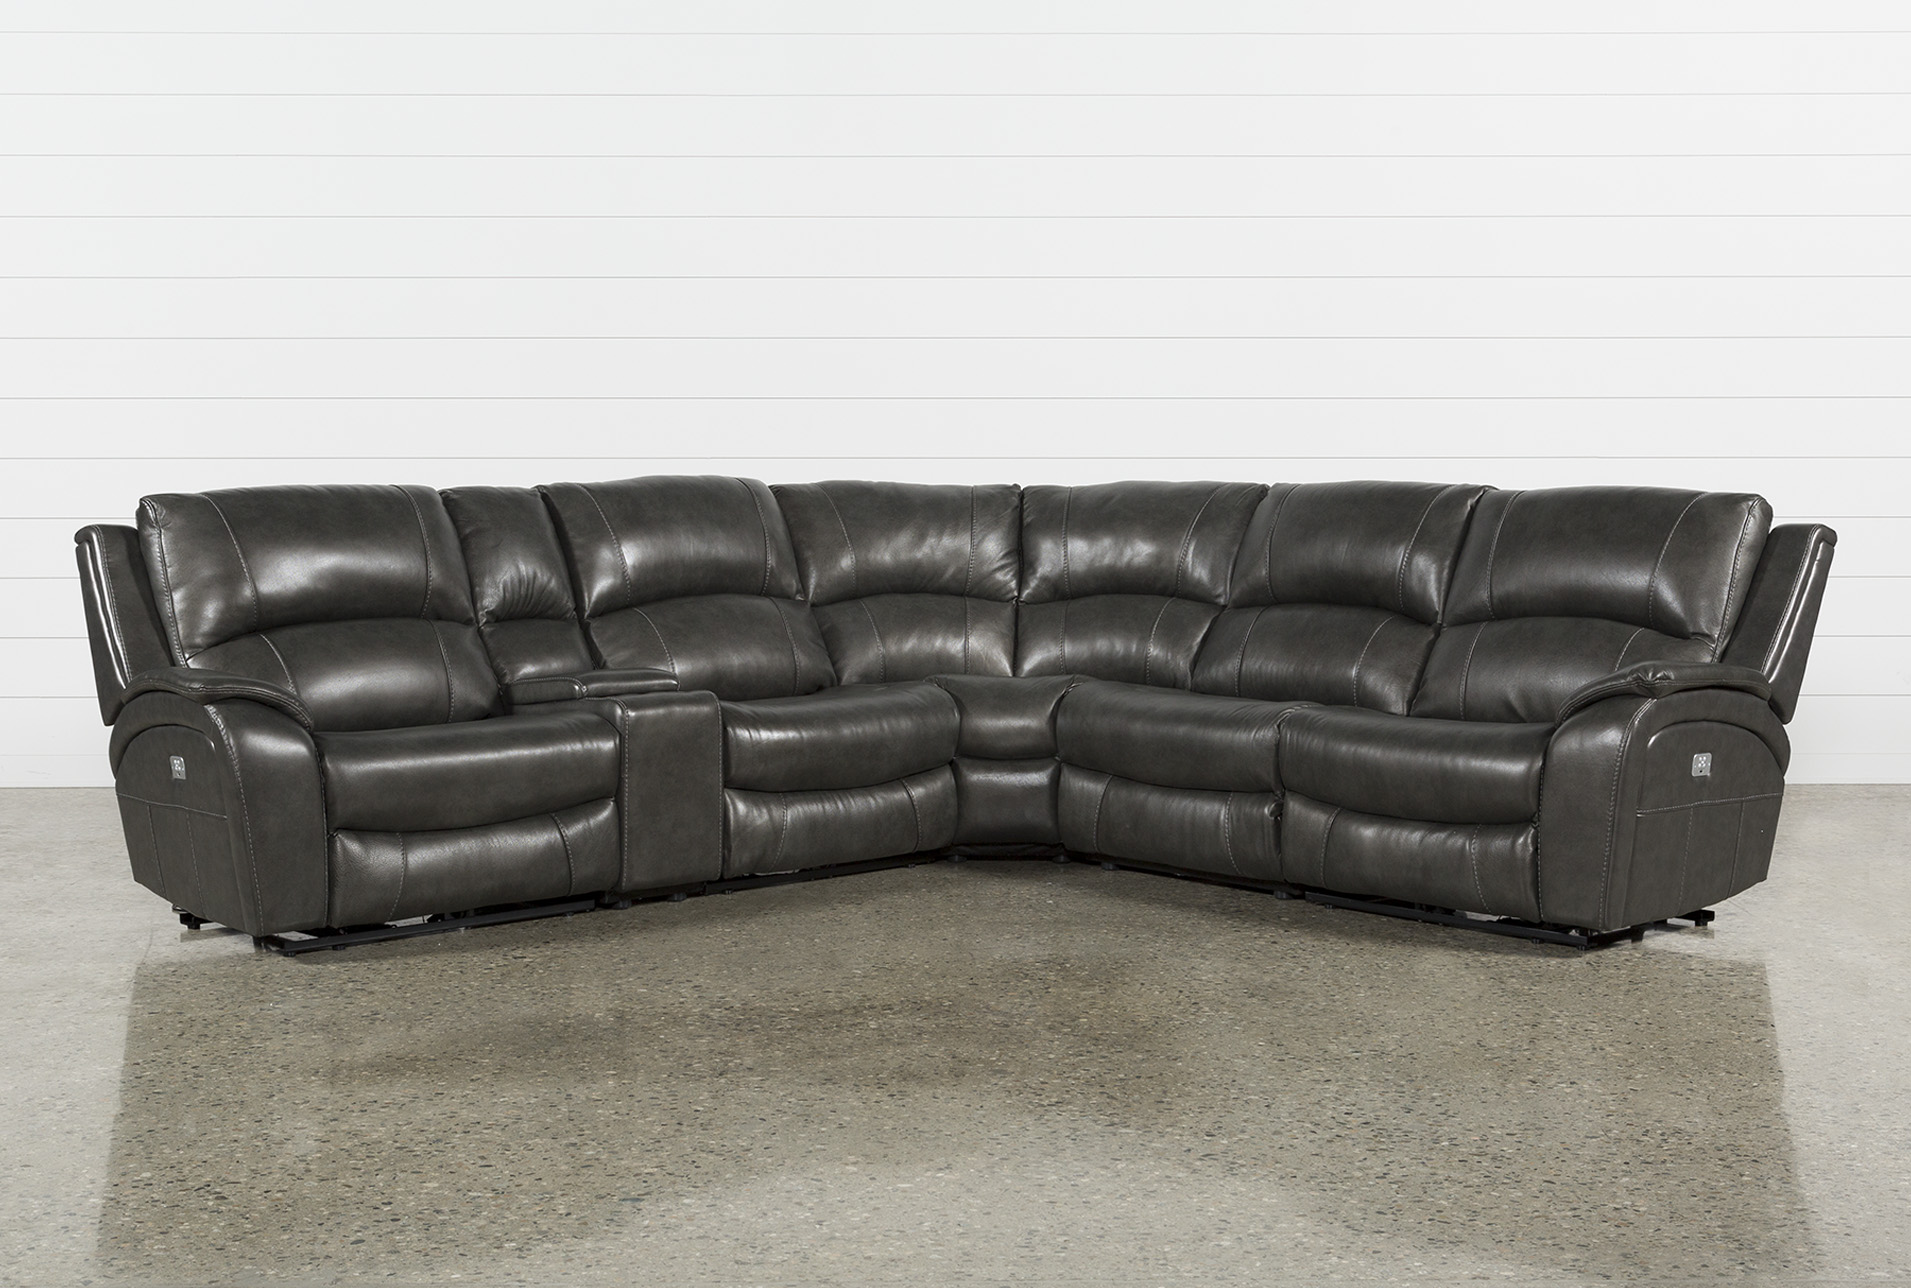 Travis Dk Grey Leather 6 Piece Power Reclining Sectional W/Pwr Hdrst